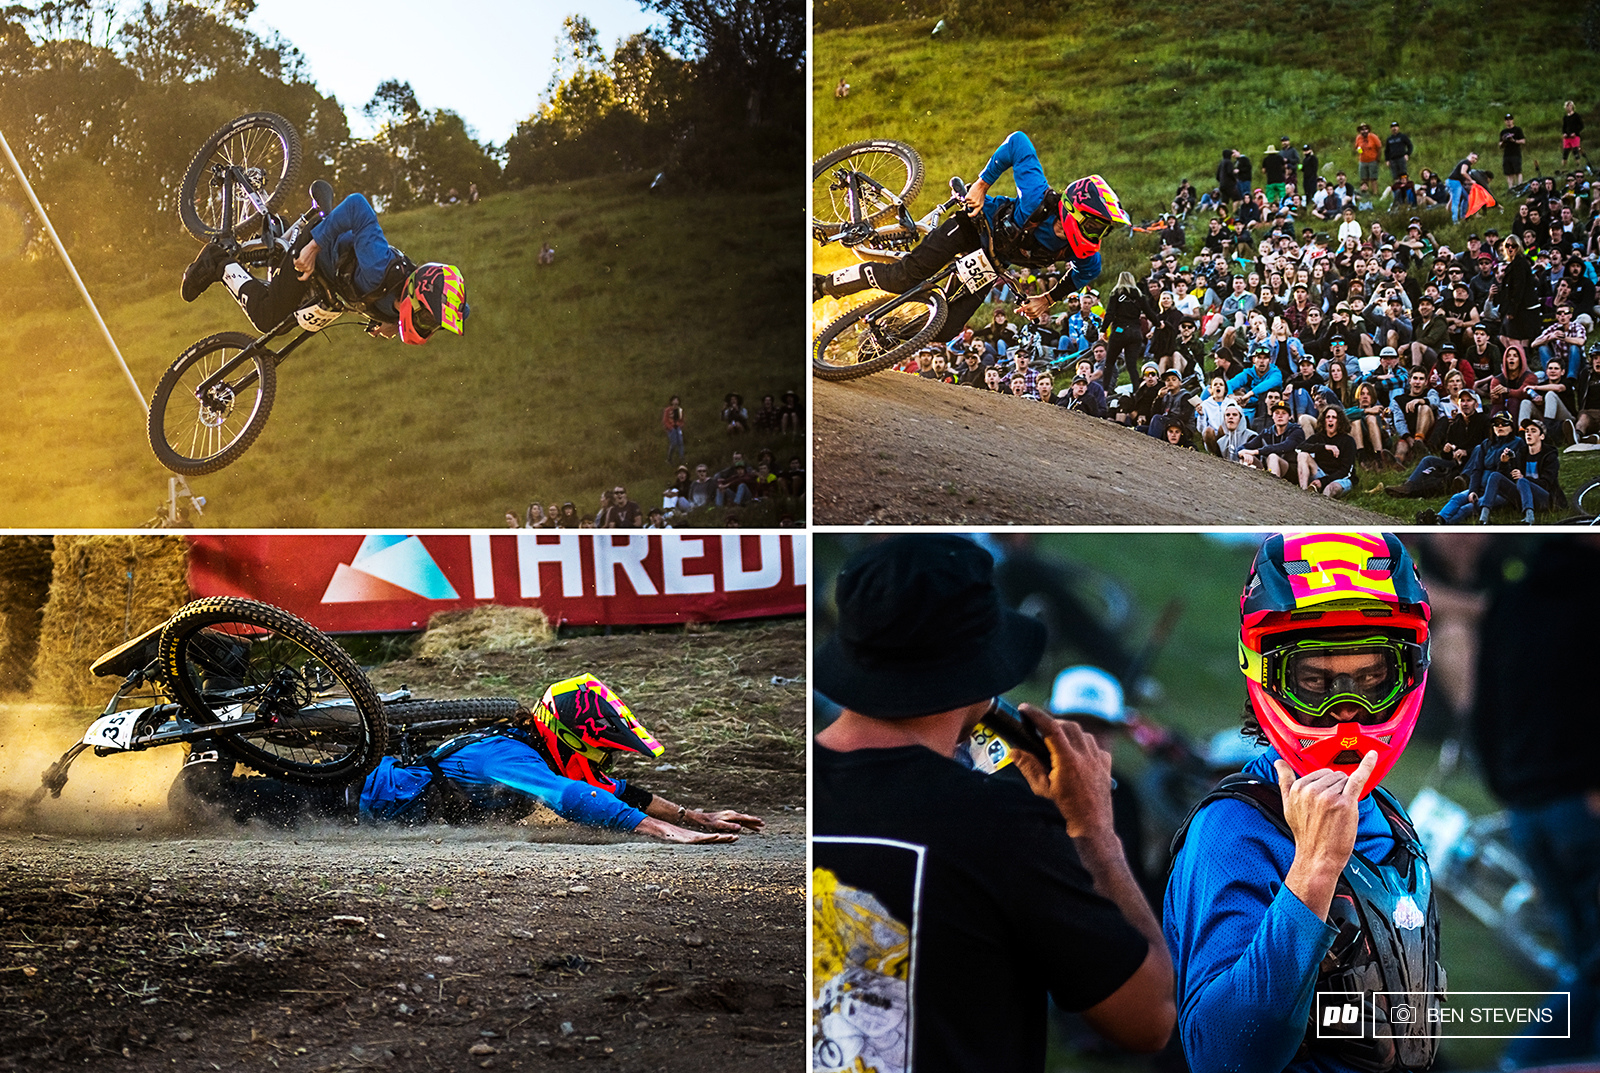 Ryan Dawson s attempt at a back flip in the Sram Whip Wars saw him superman across the dirt.